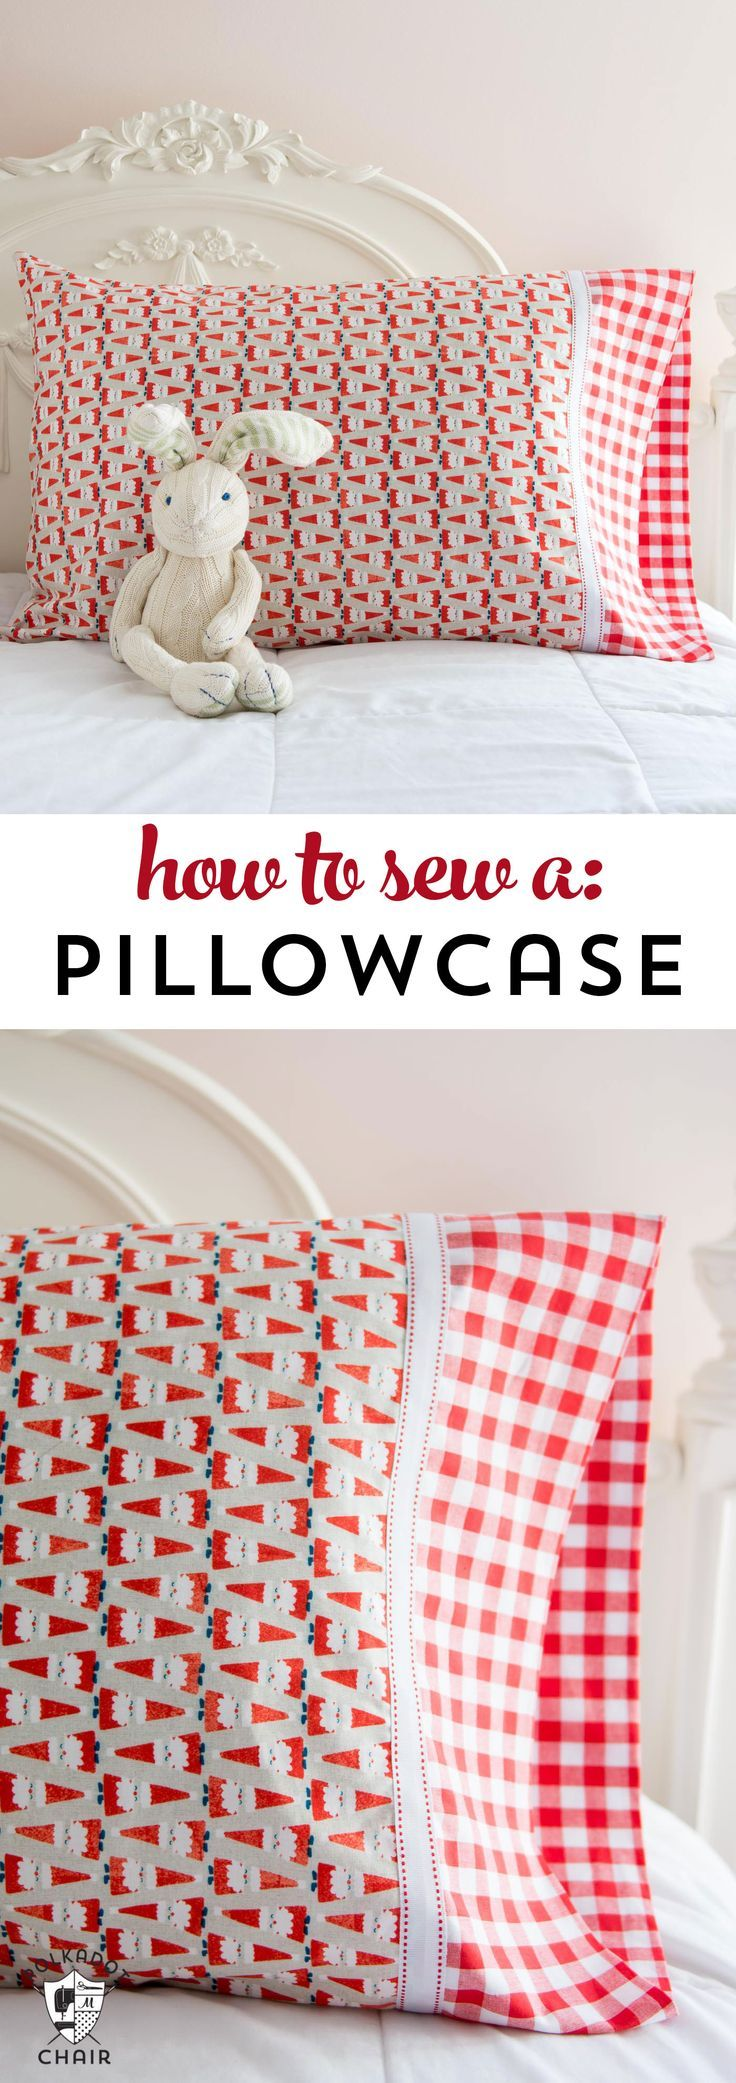 Pillowcase Craft Projects: A quick and easy way to sew a pillowcase   Learning  Easy and    ,